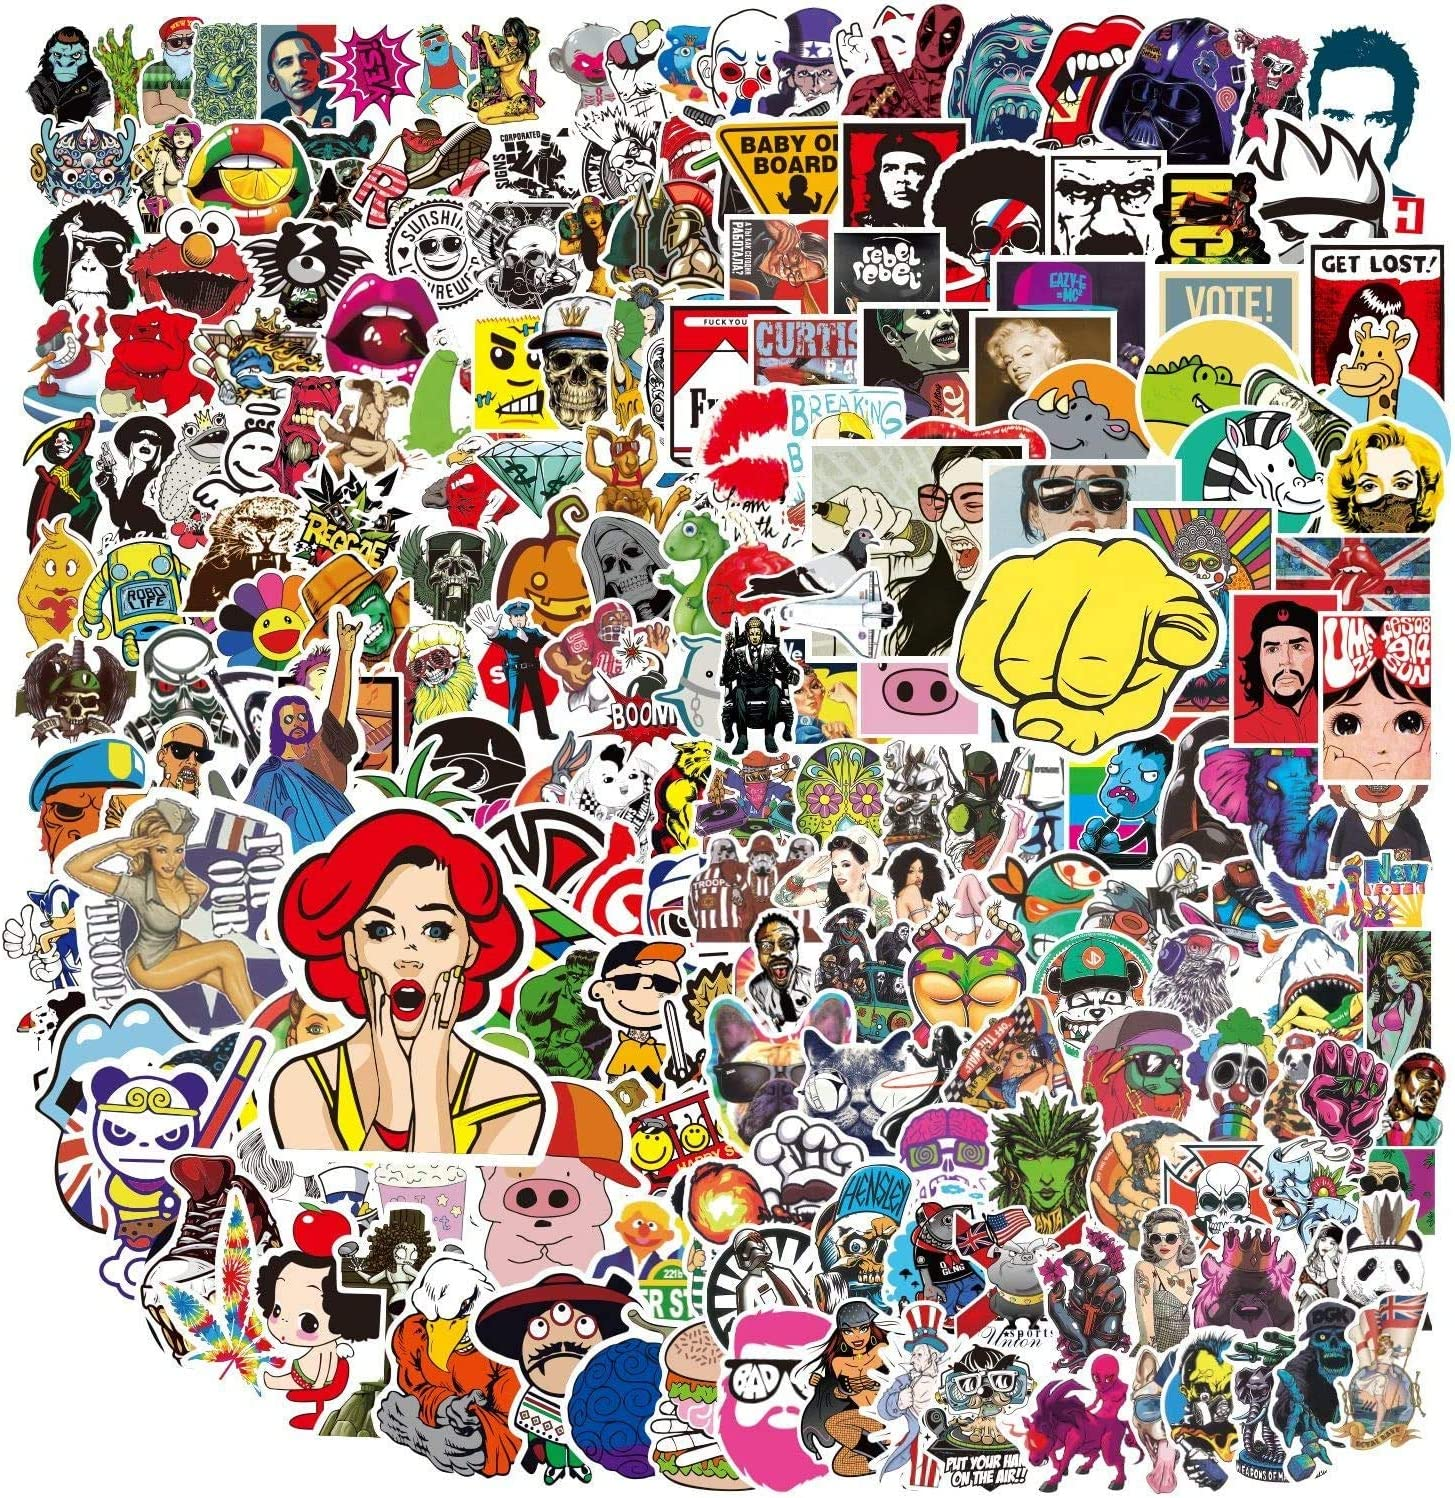 400 PCS Adult Stickers Pack,Colorful Waterproof Meme Stickers for Flask, Laptop, Phone, Water Bottle, Motorcycle,Car,Guitar,Cool Aesthetic Vinyl Stickers for Adults